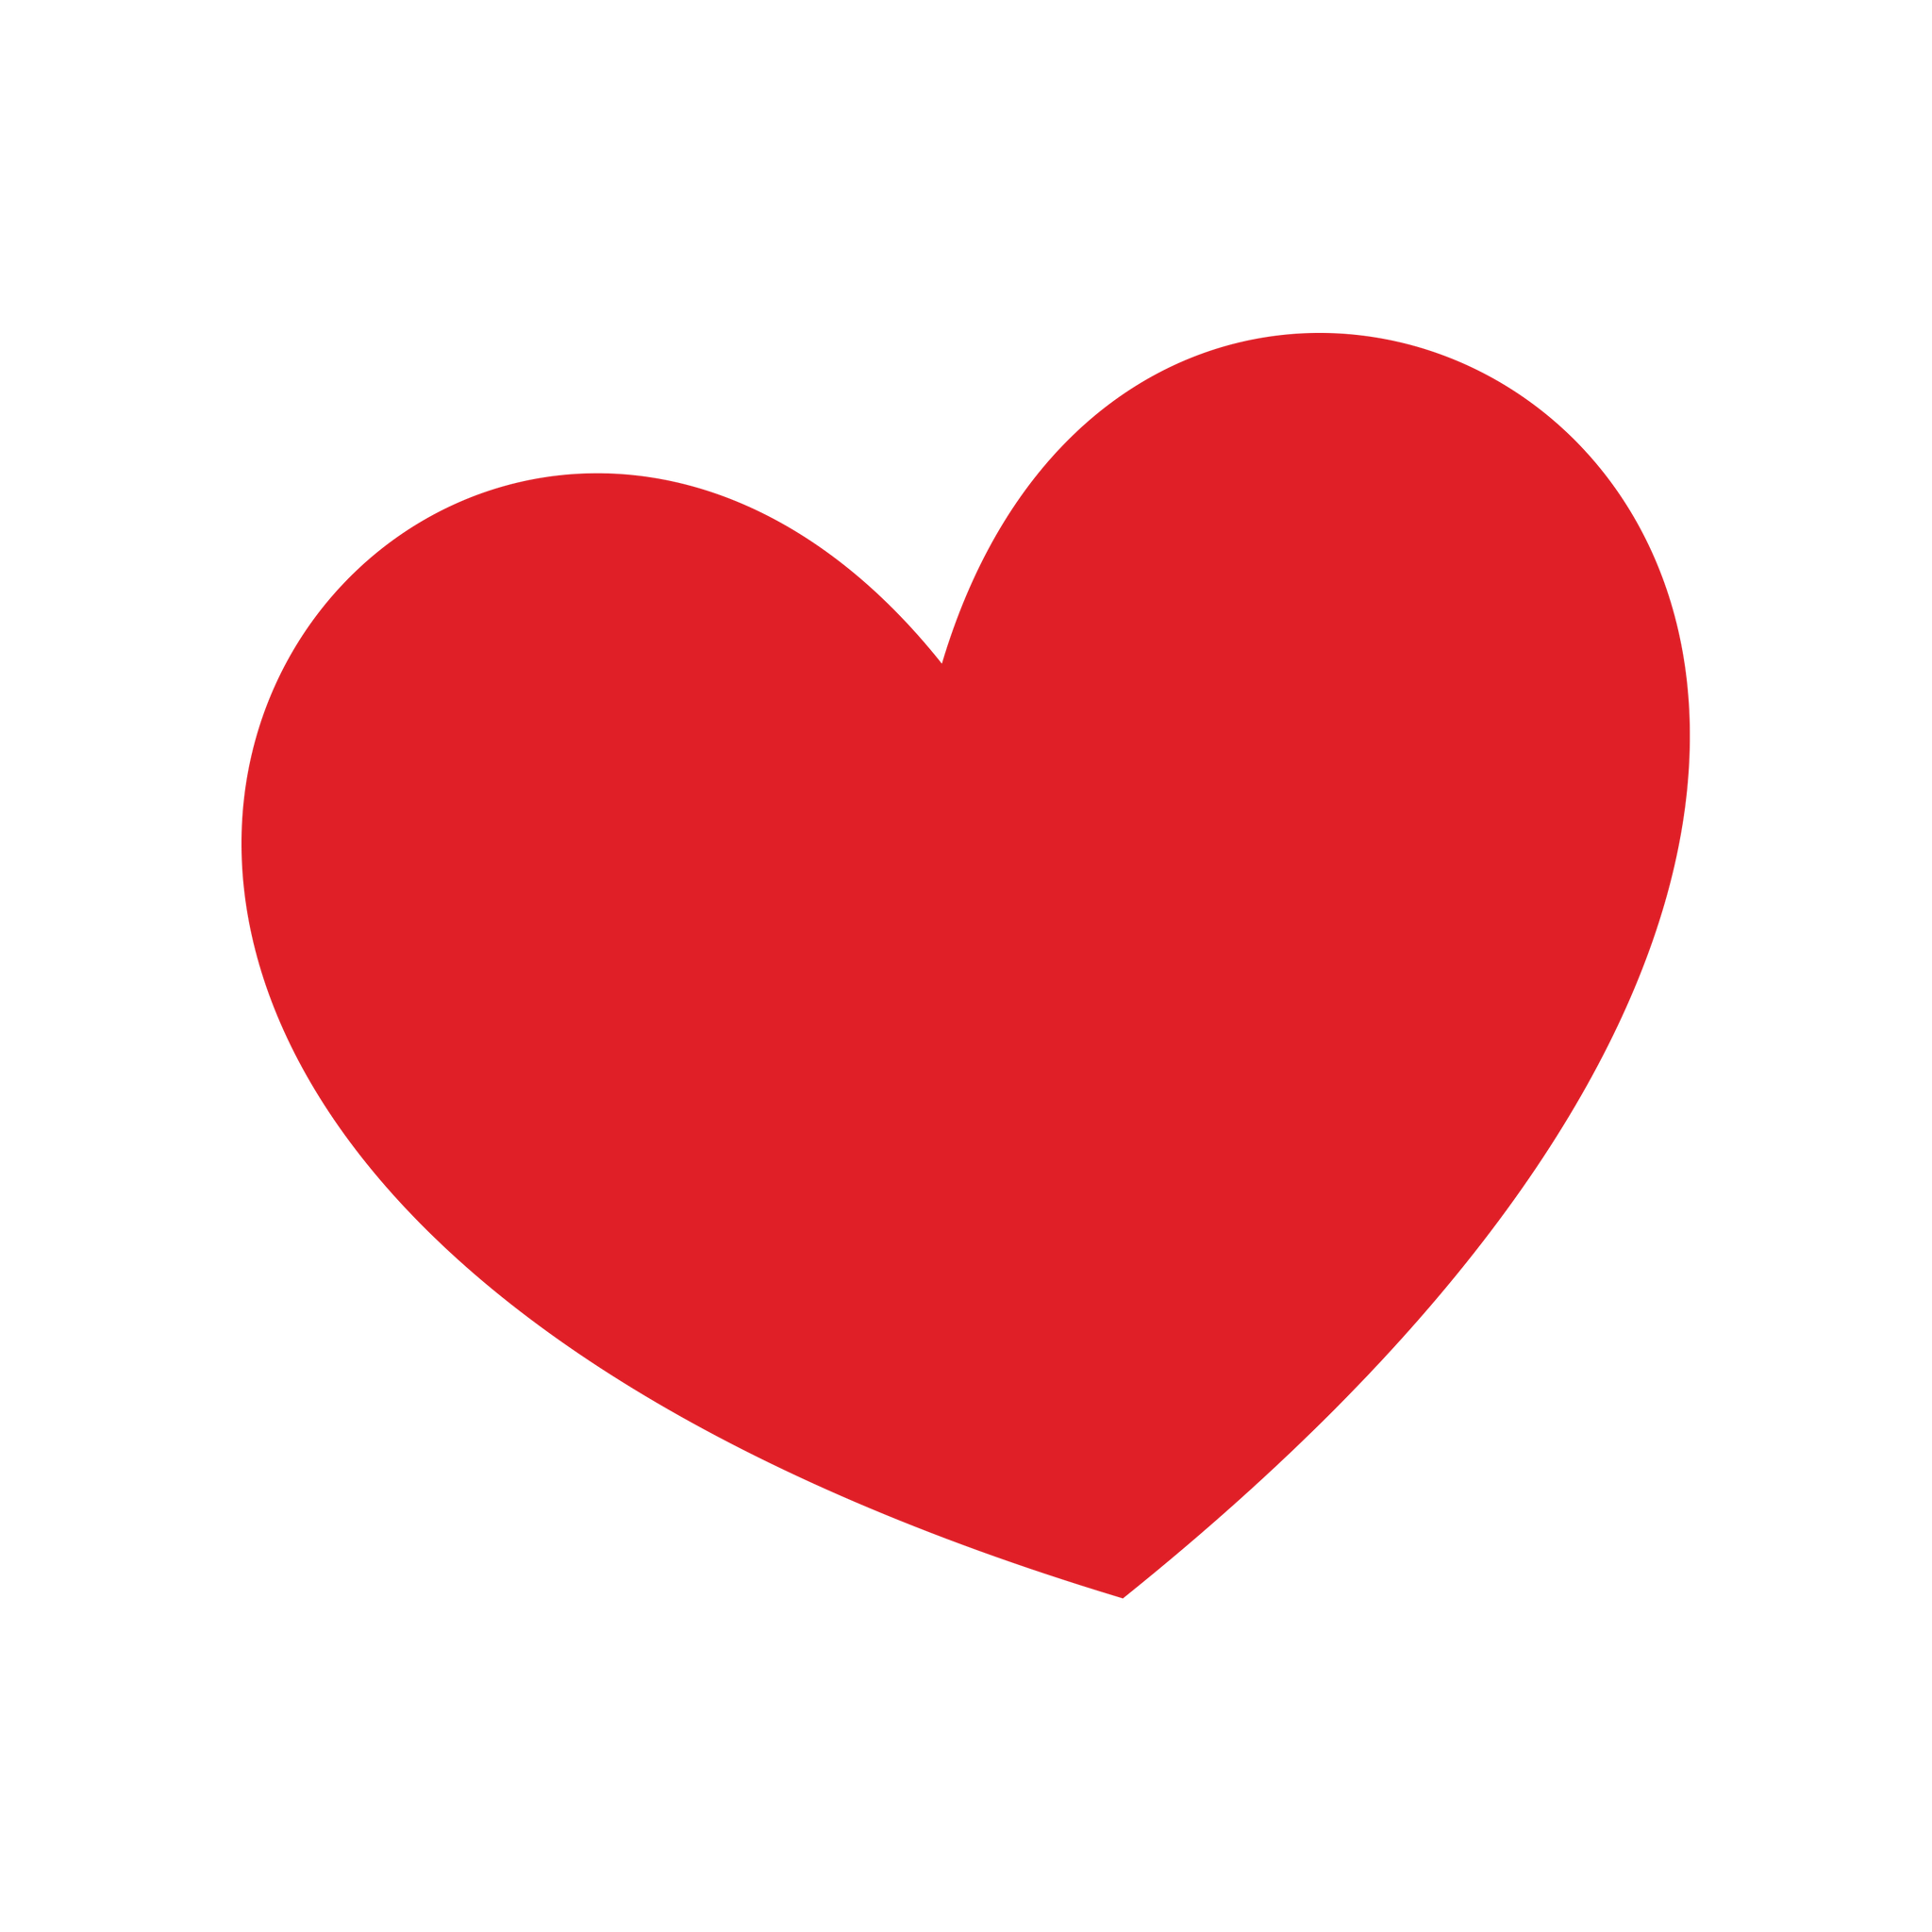 Classic Red Heart By Team Tattly From Tattly Temporary Tattoos